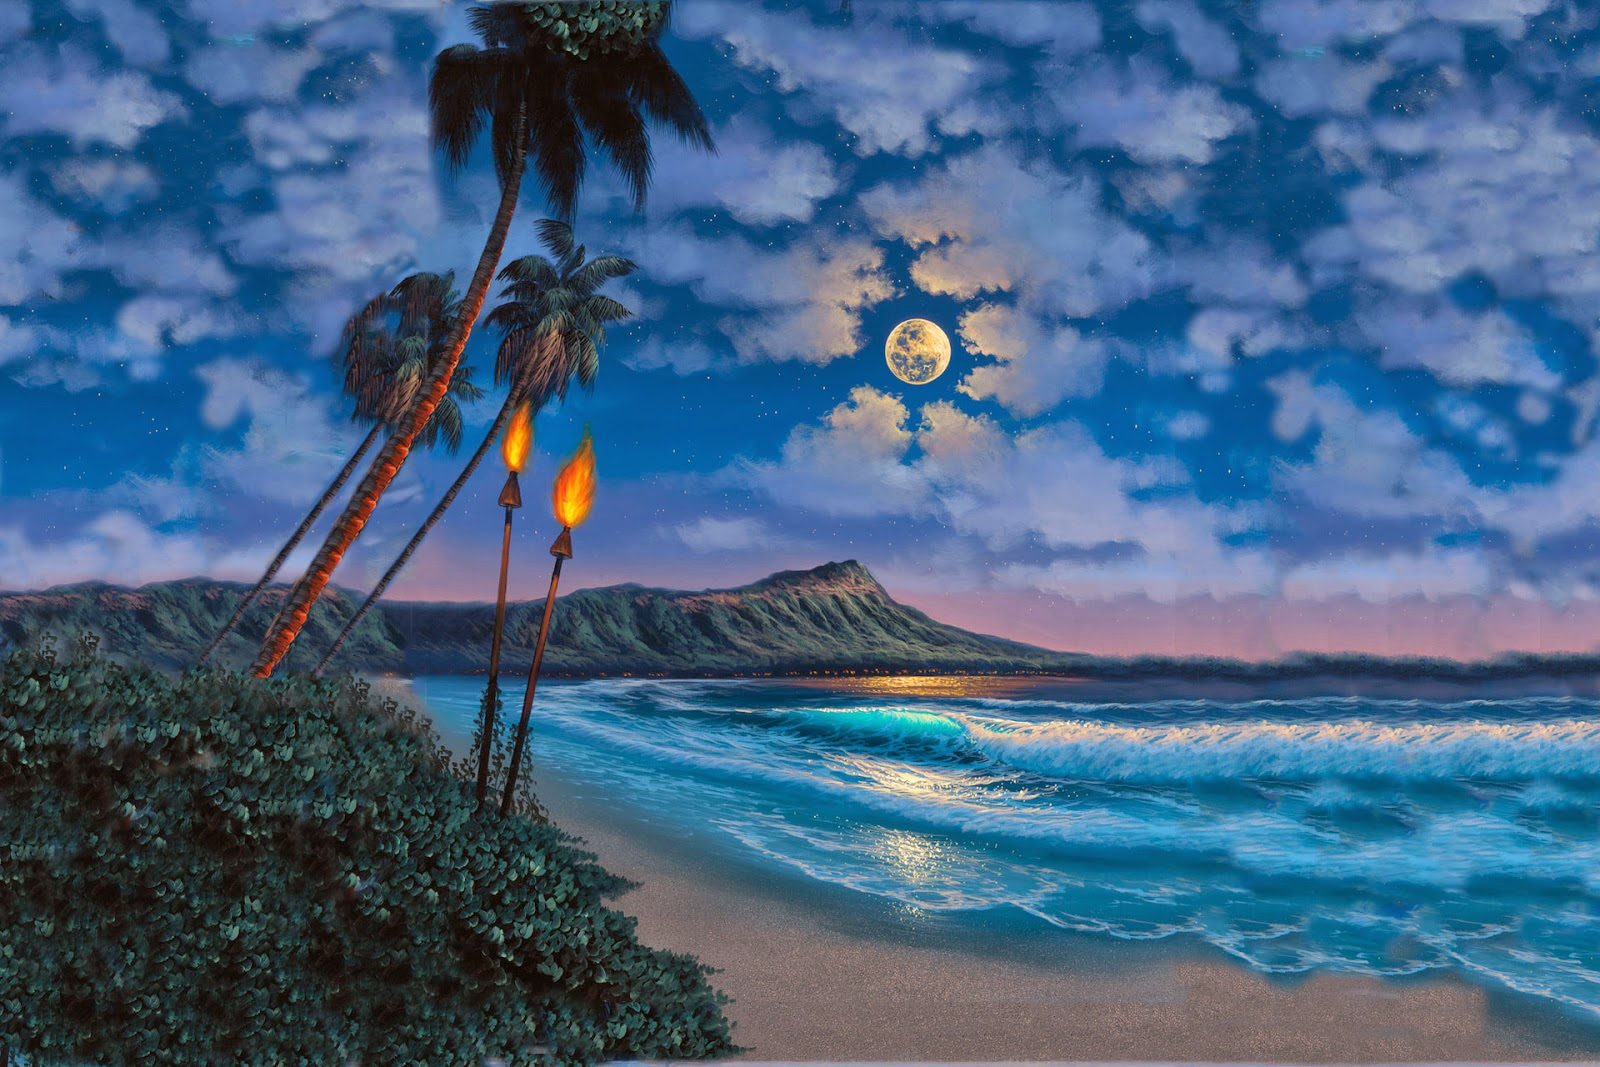 romantic_nature_beaches_landscapessea_waves_sky_clouds_moon_light_artistic_paintings_1920x1200.jpg